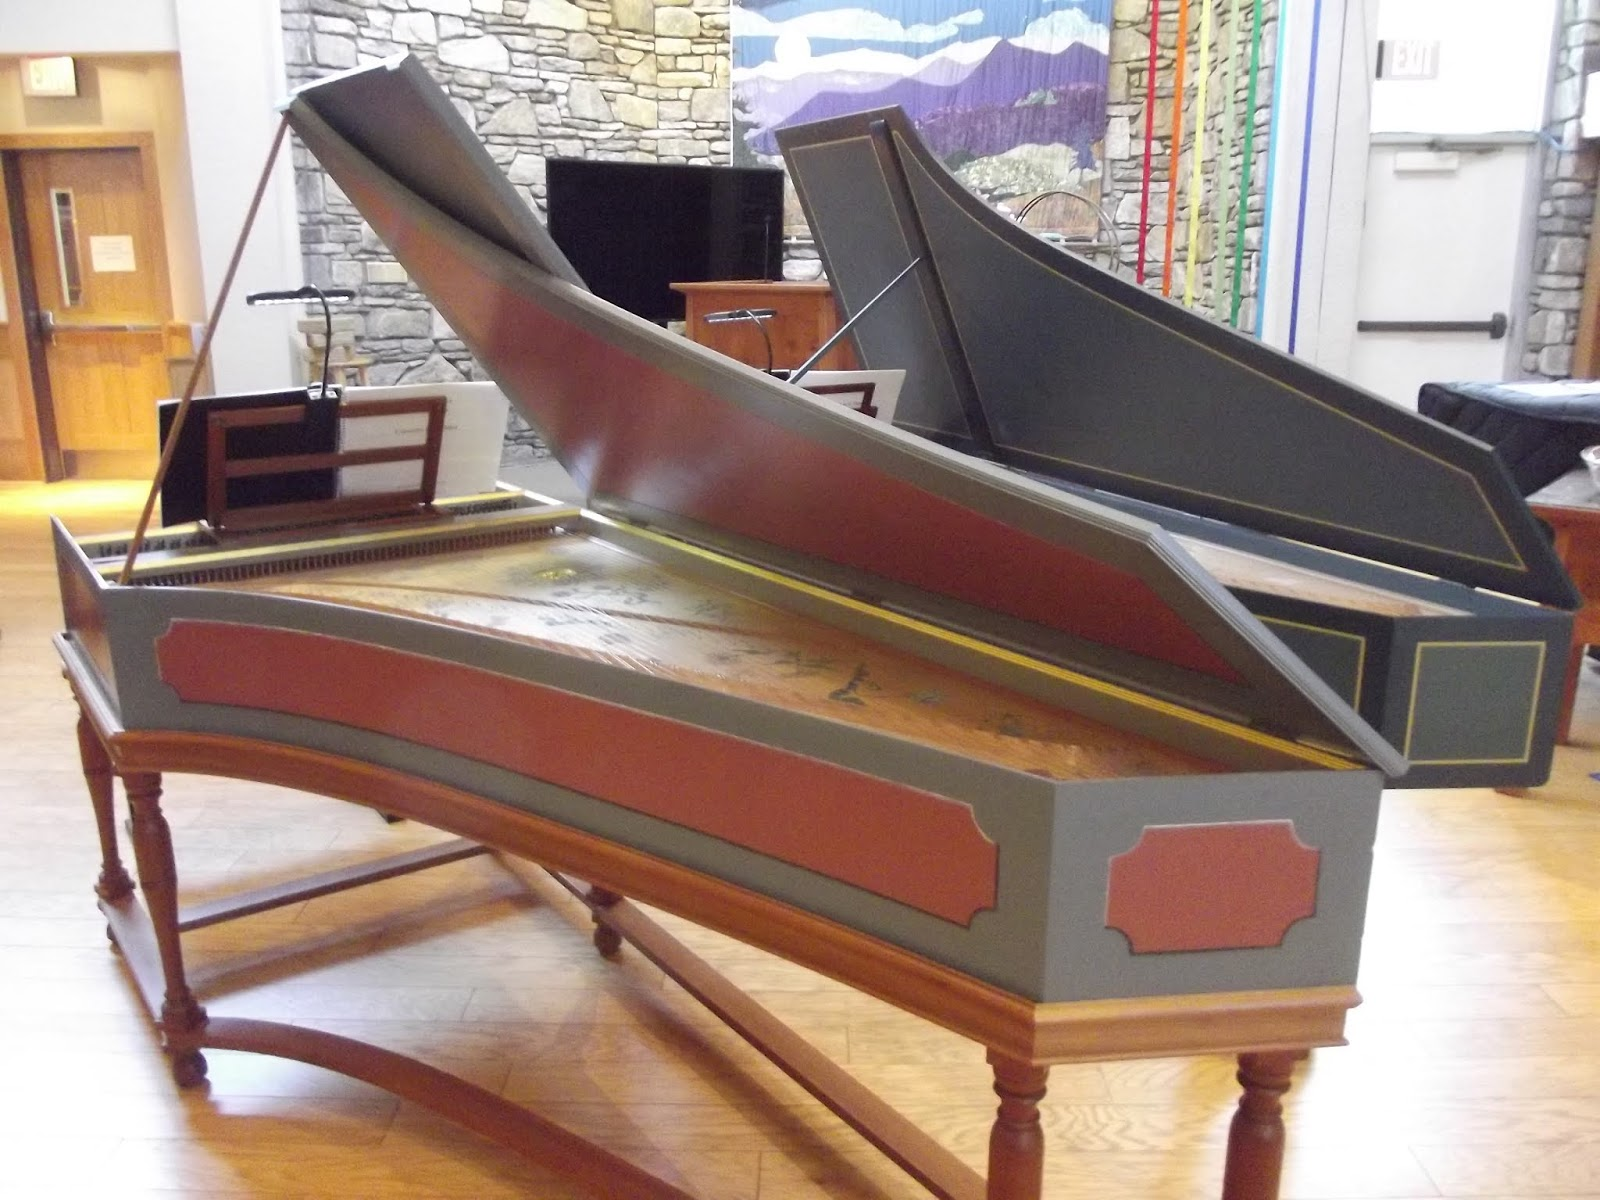 IN REVIEW: the harpsichords played by JORY VINIKOUR and PHILIPPE LEROY in recital in Asheville, North Carolina, on 20 October 2018 [Photo by the author, © by Joseph Newsome / Voix des Arts]